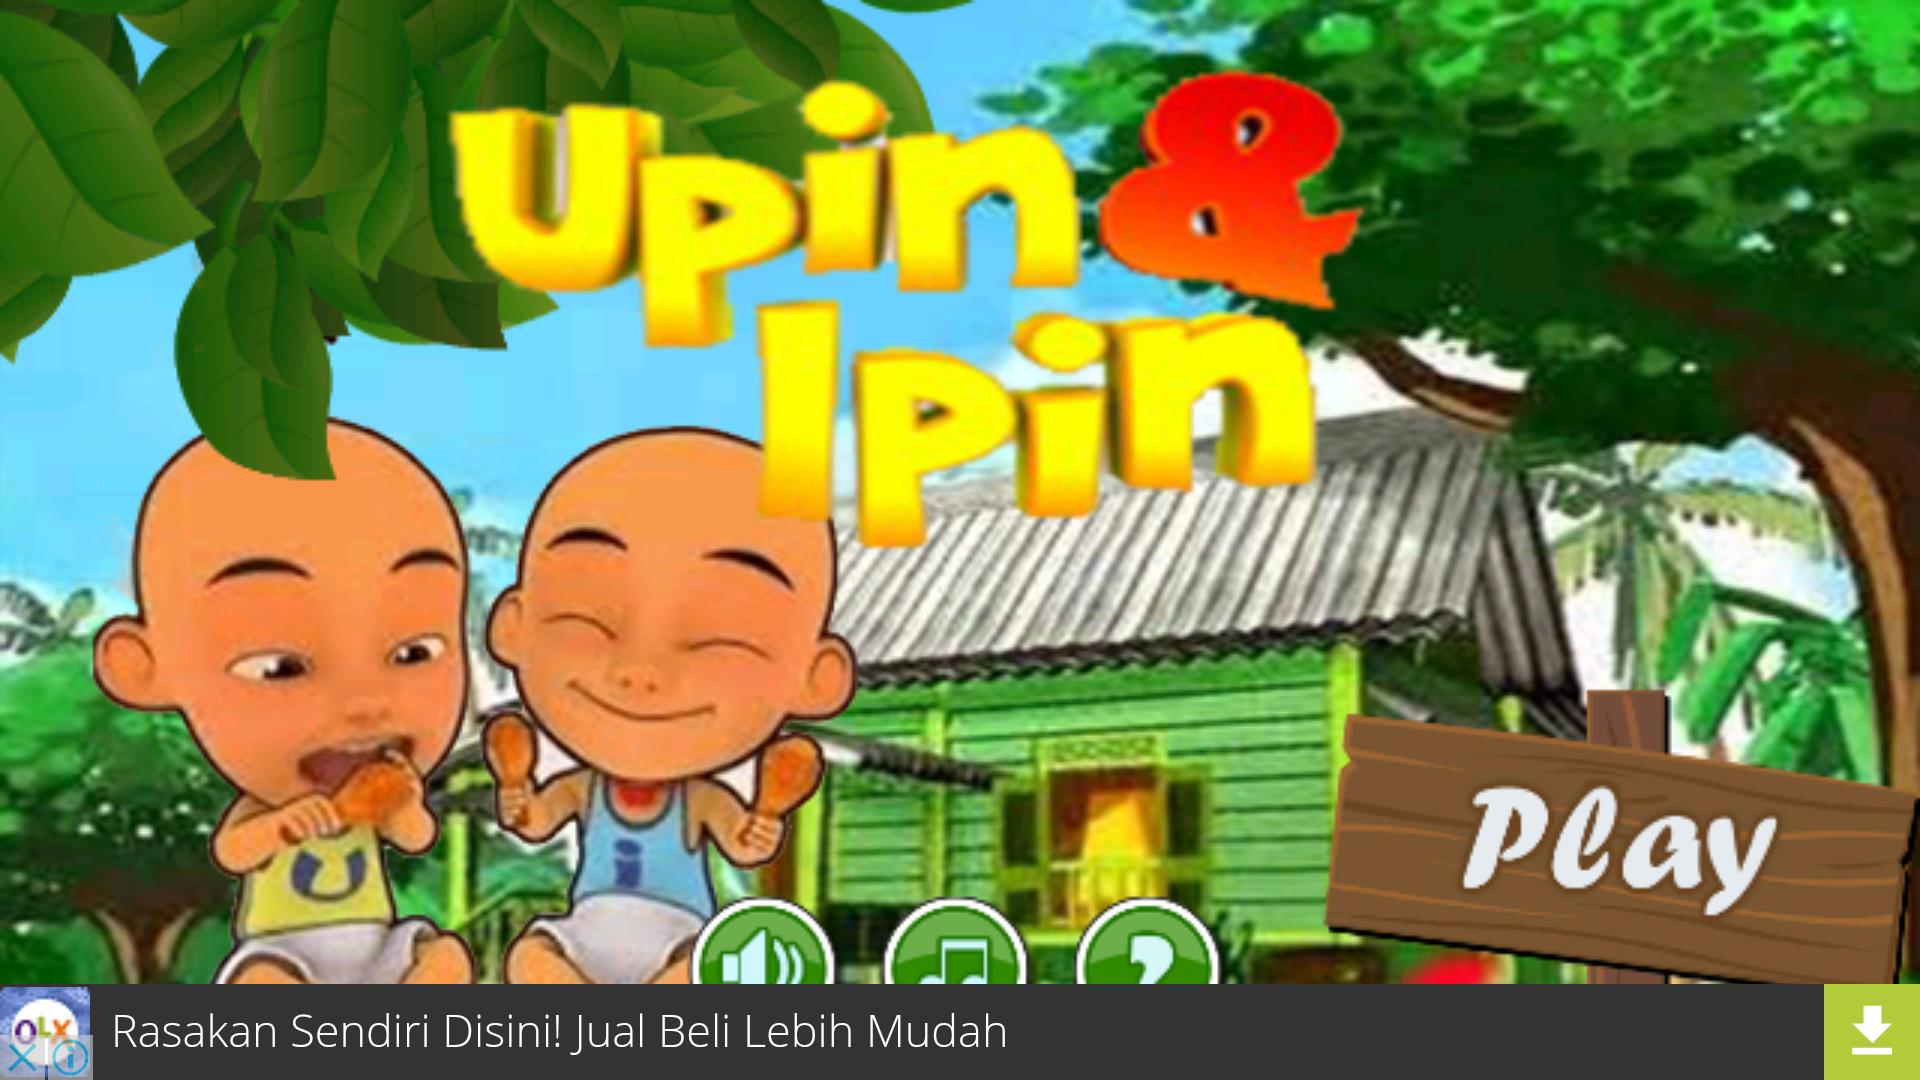 Upin Ipin Games For Android Apk Download